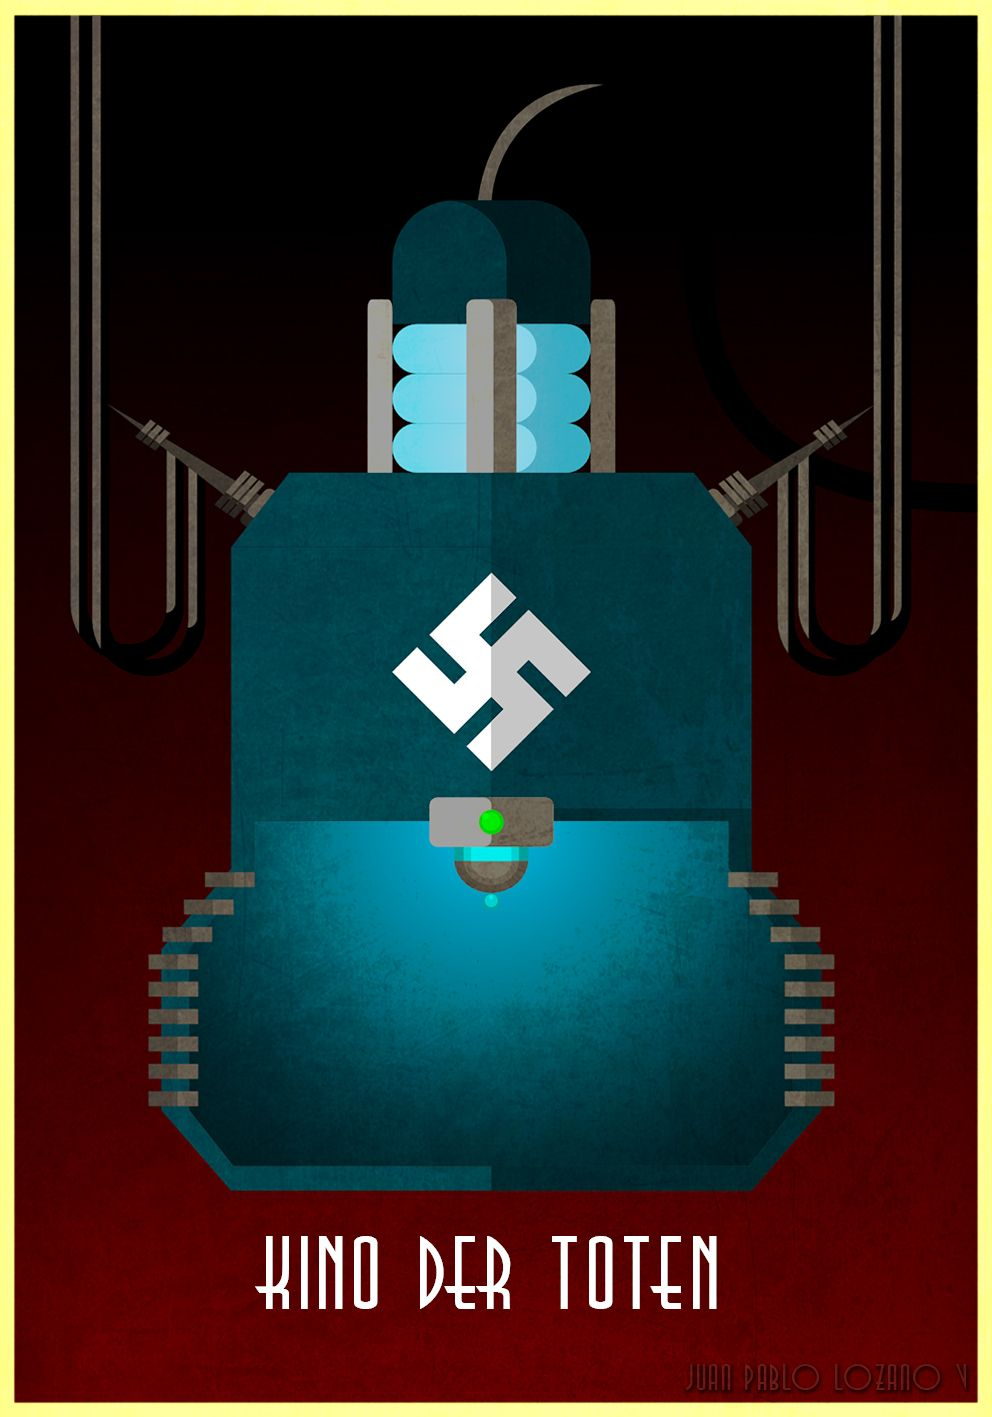 Kino Der Toten Post Digital Vector Art Of Teleporter Video Gaming